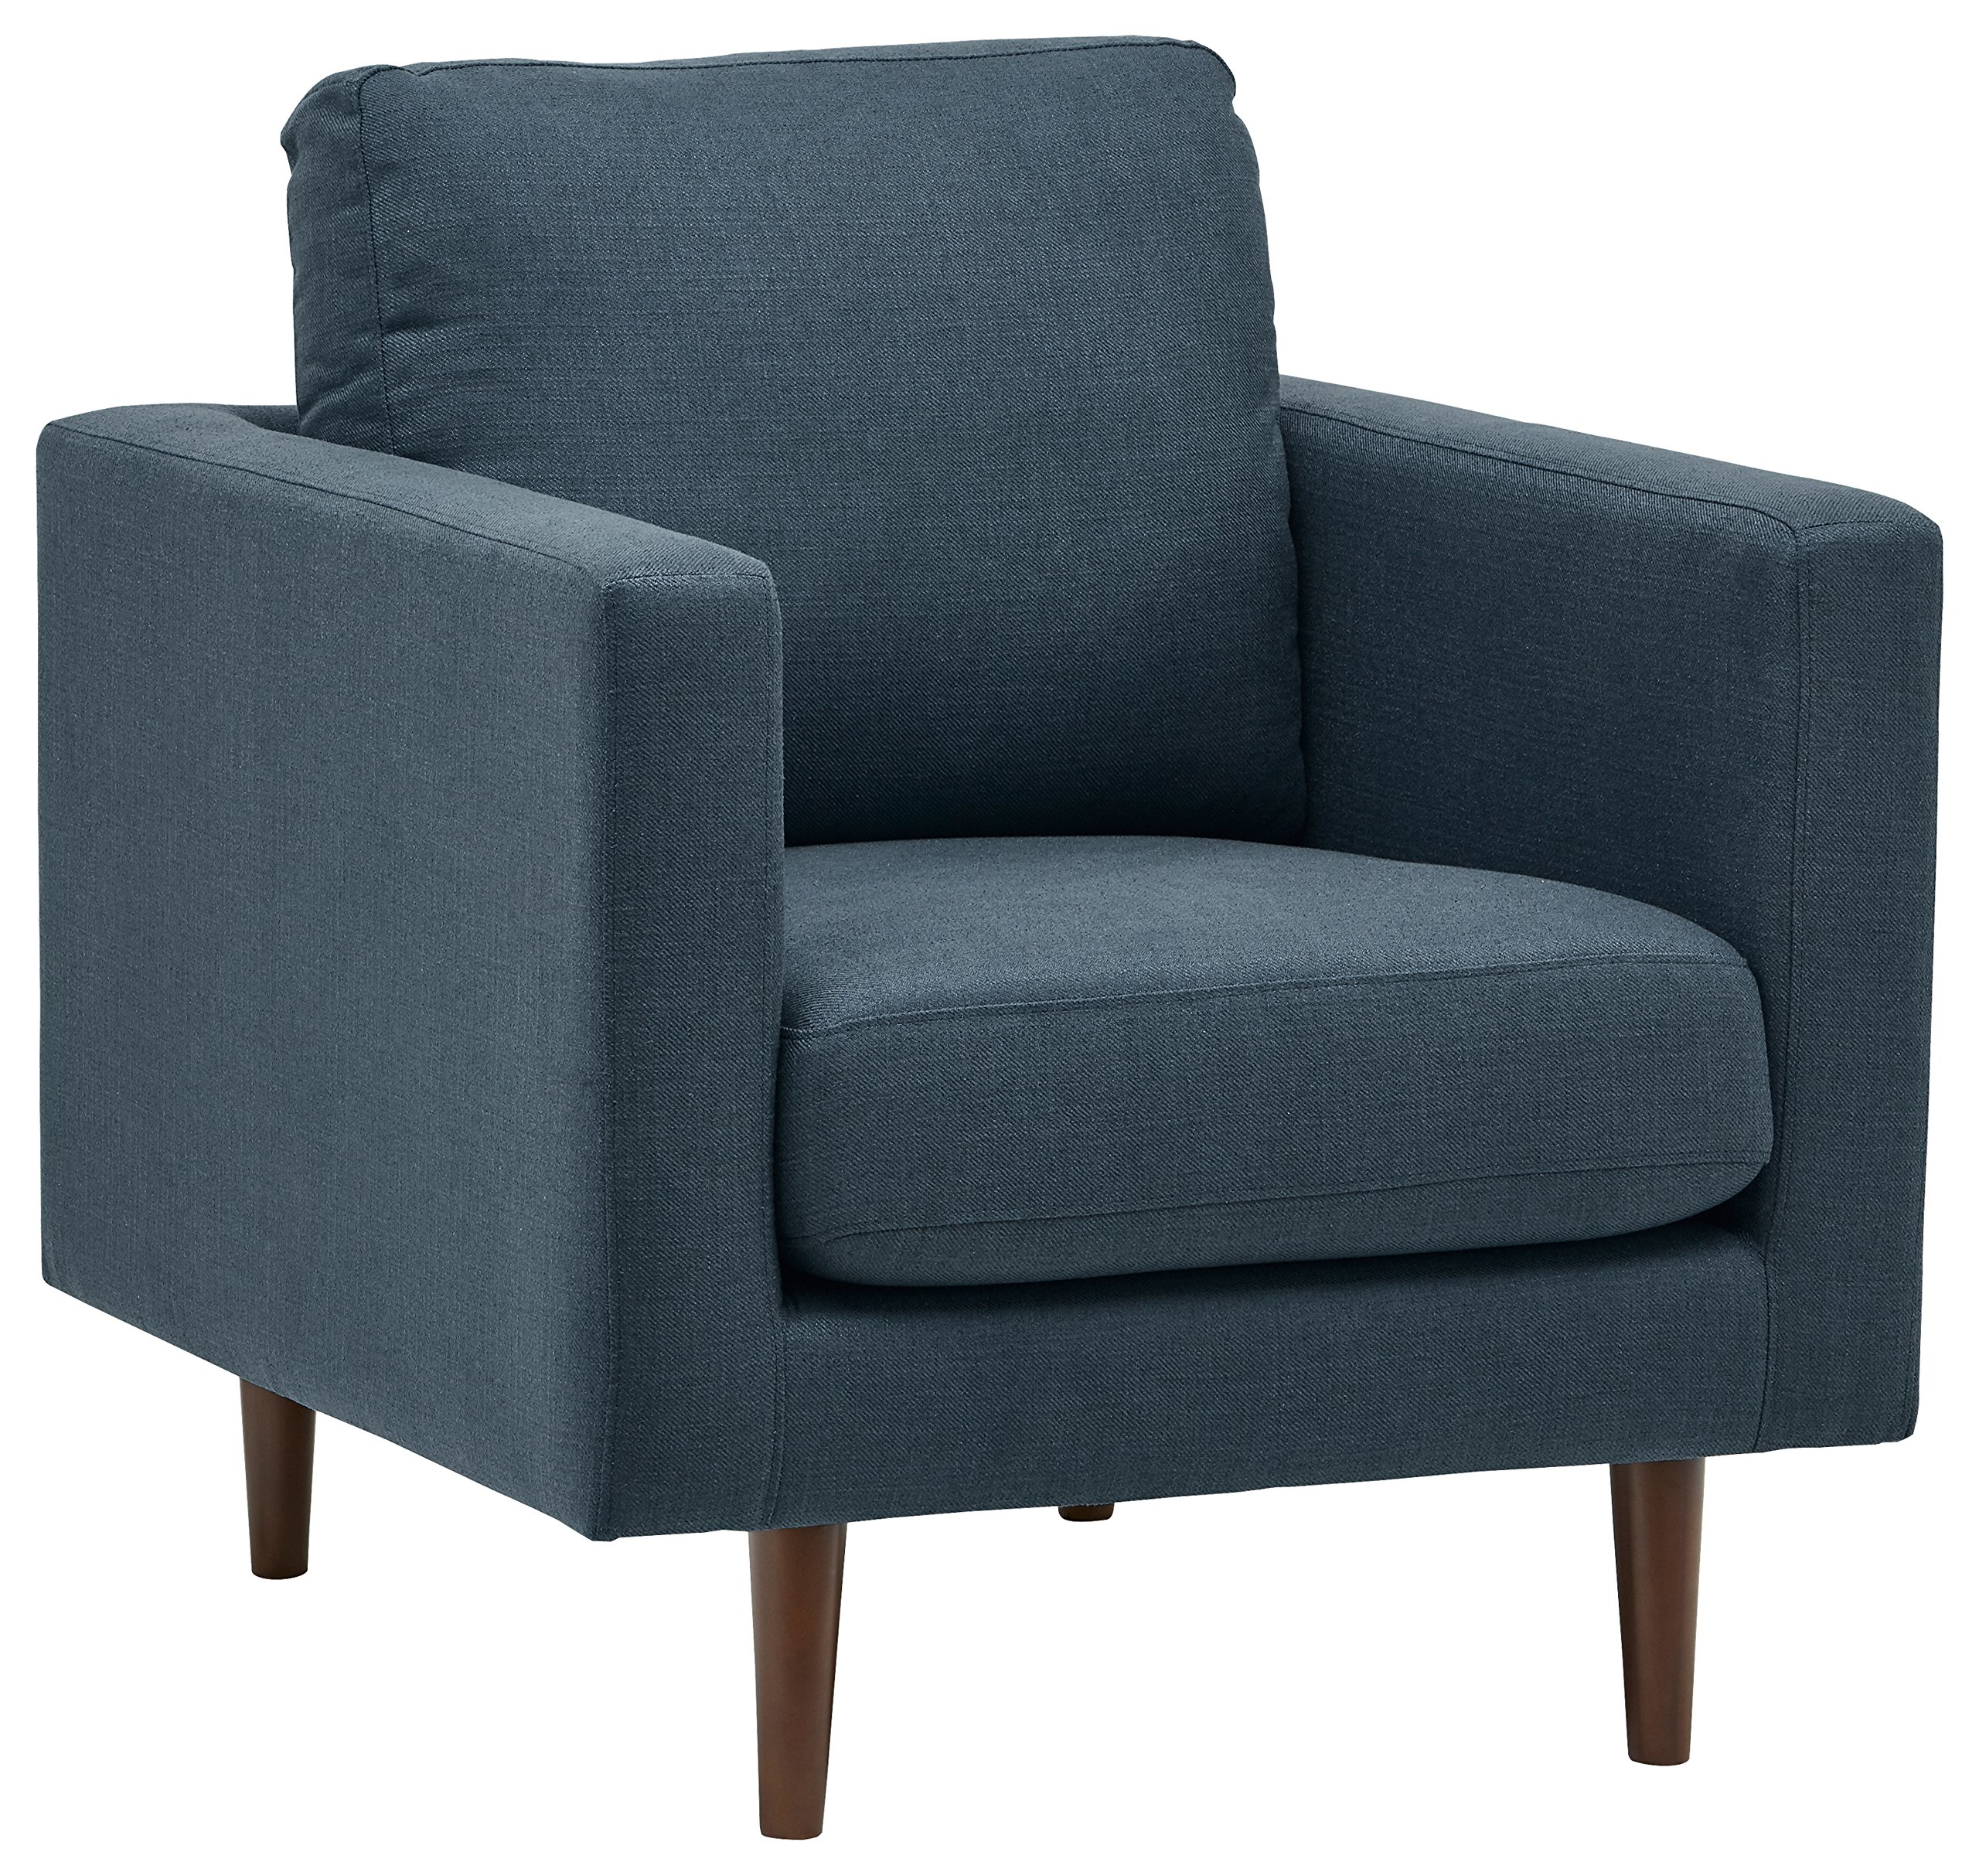 "Rivet Revolve Modern Accent Chair, Denim - This chair has enough contemporary yet classic elements to blend in with your existing style. Clean lines, comfortable seating and durable fabric give this piece functionality as well as smart design. 34.6""D x 32.7""W x 35.4""H Hardwood frame with solid beech wood legs - living-room-furniture, living-room, accent-chairs - A12vHbfzKHL -"